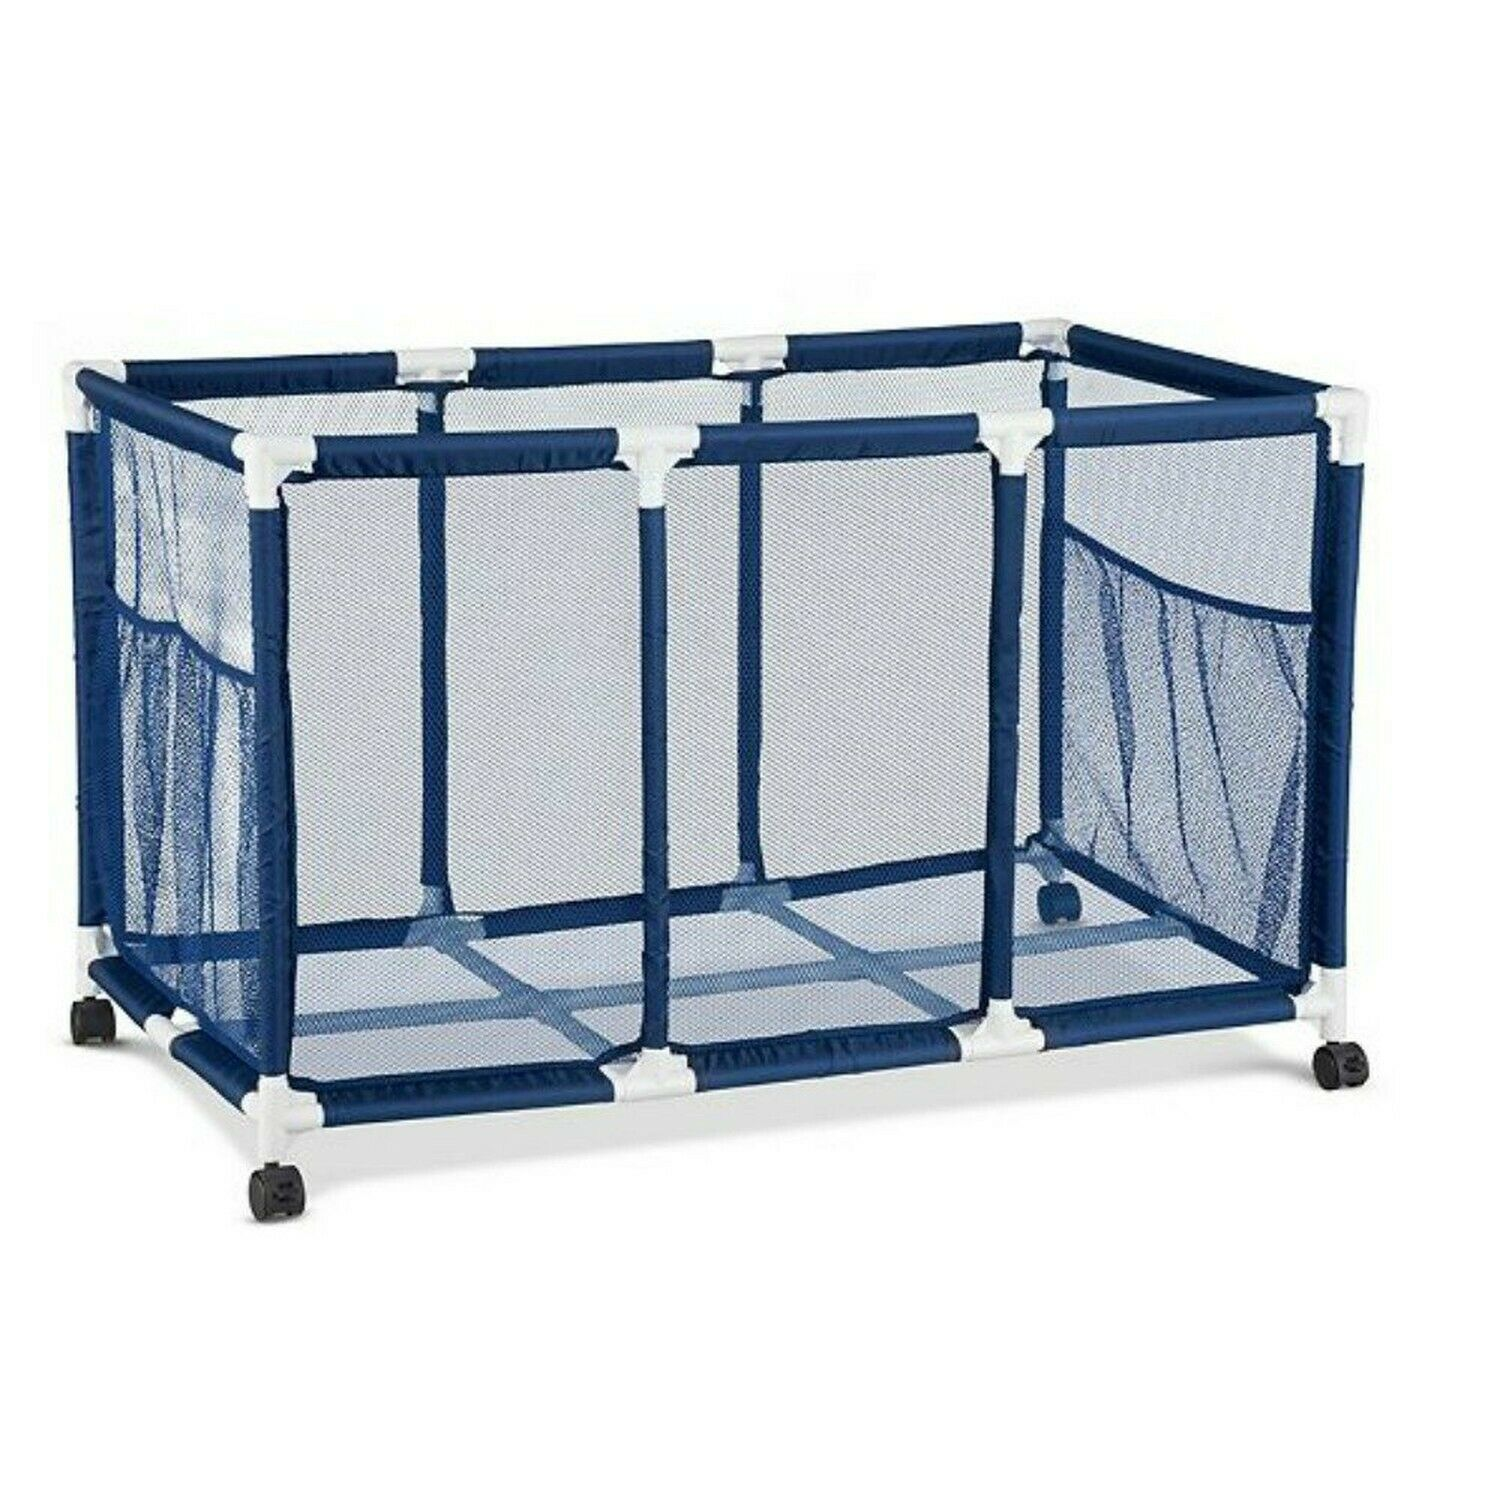 Easier Height For Kids Reach Rolling Pool Toy Storage Cart Bin 42 Inch Width X 26 Inch Height Toy Bags Nets Toys Games